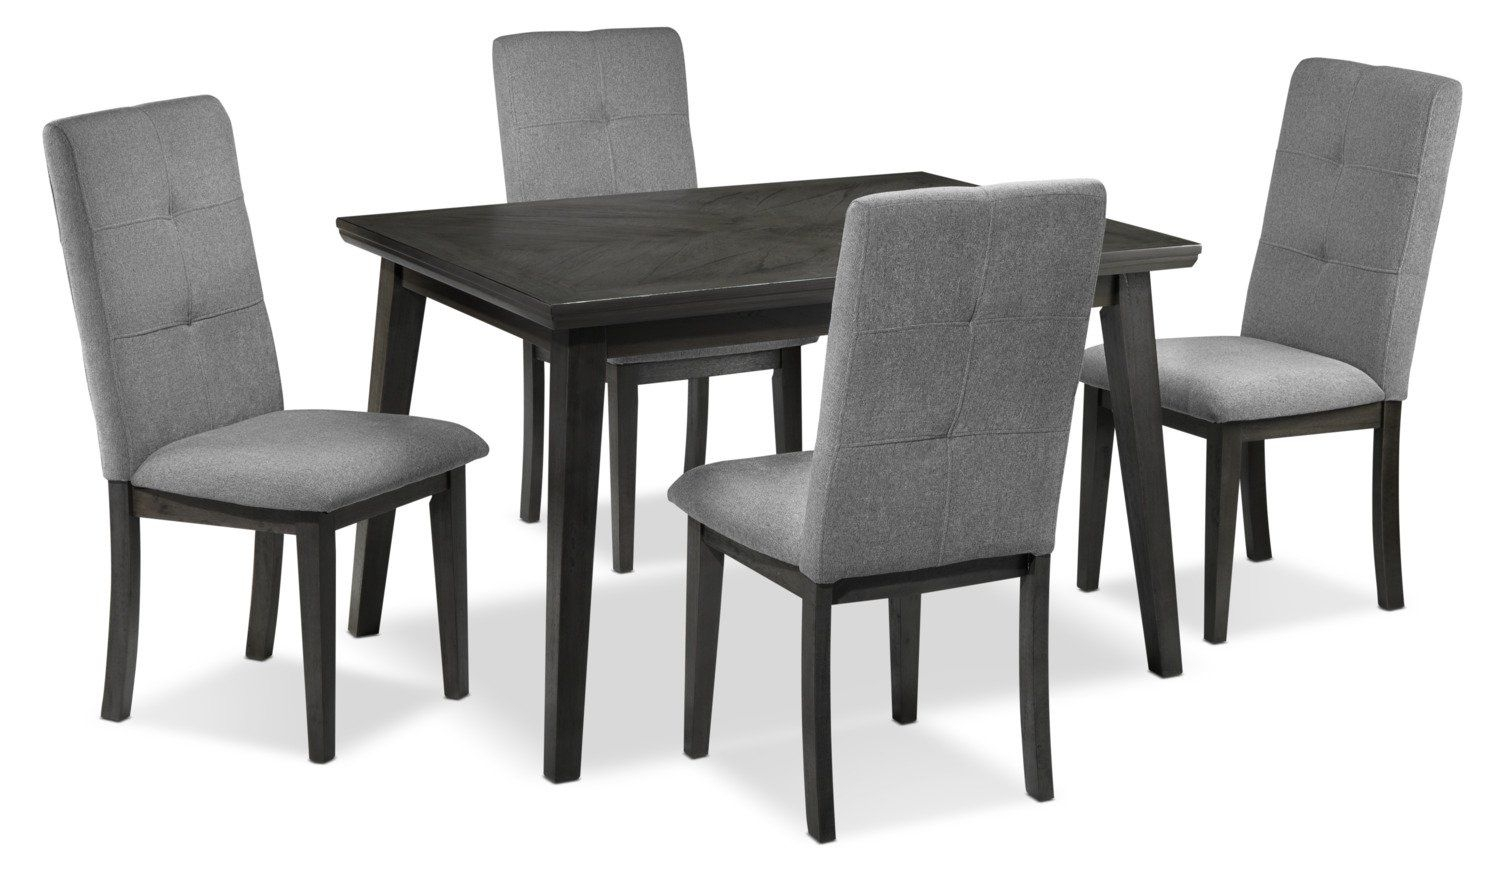 Carson 5 Piece Dinette Set – Grey | Room Decor | Dinette Sets With Regard To Most Current Stouferberg 5 Piece Dining Sets (Photo 15 of 20)